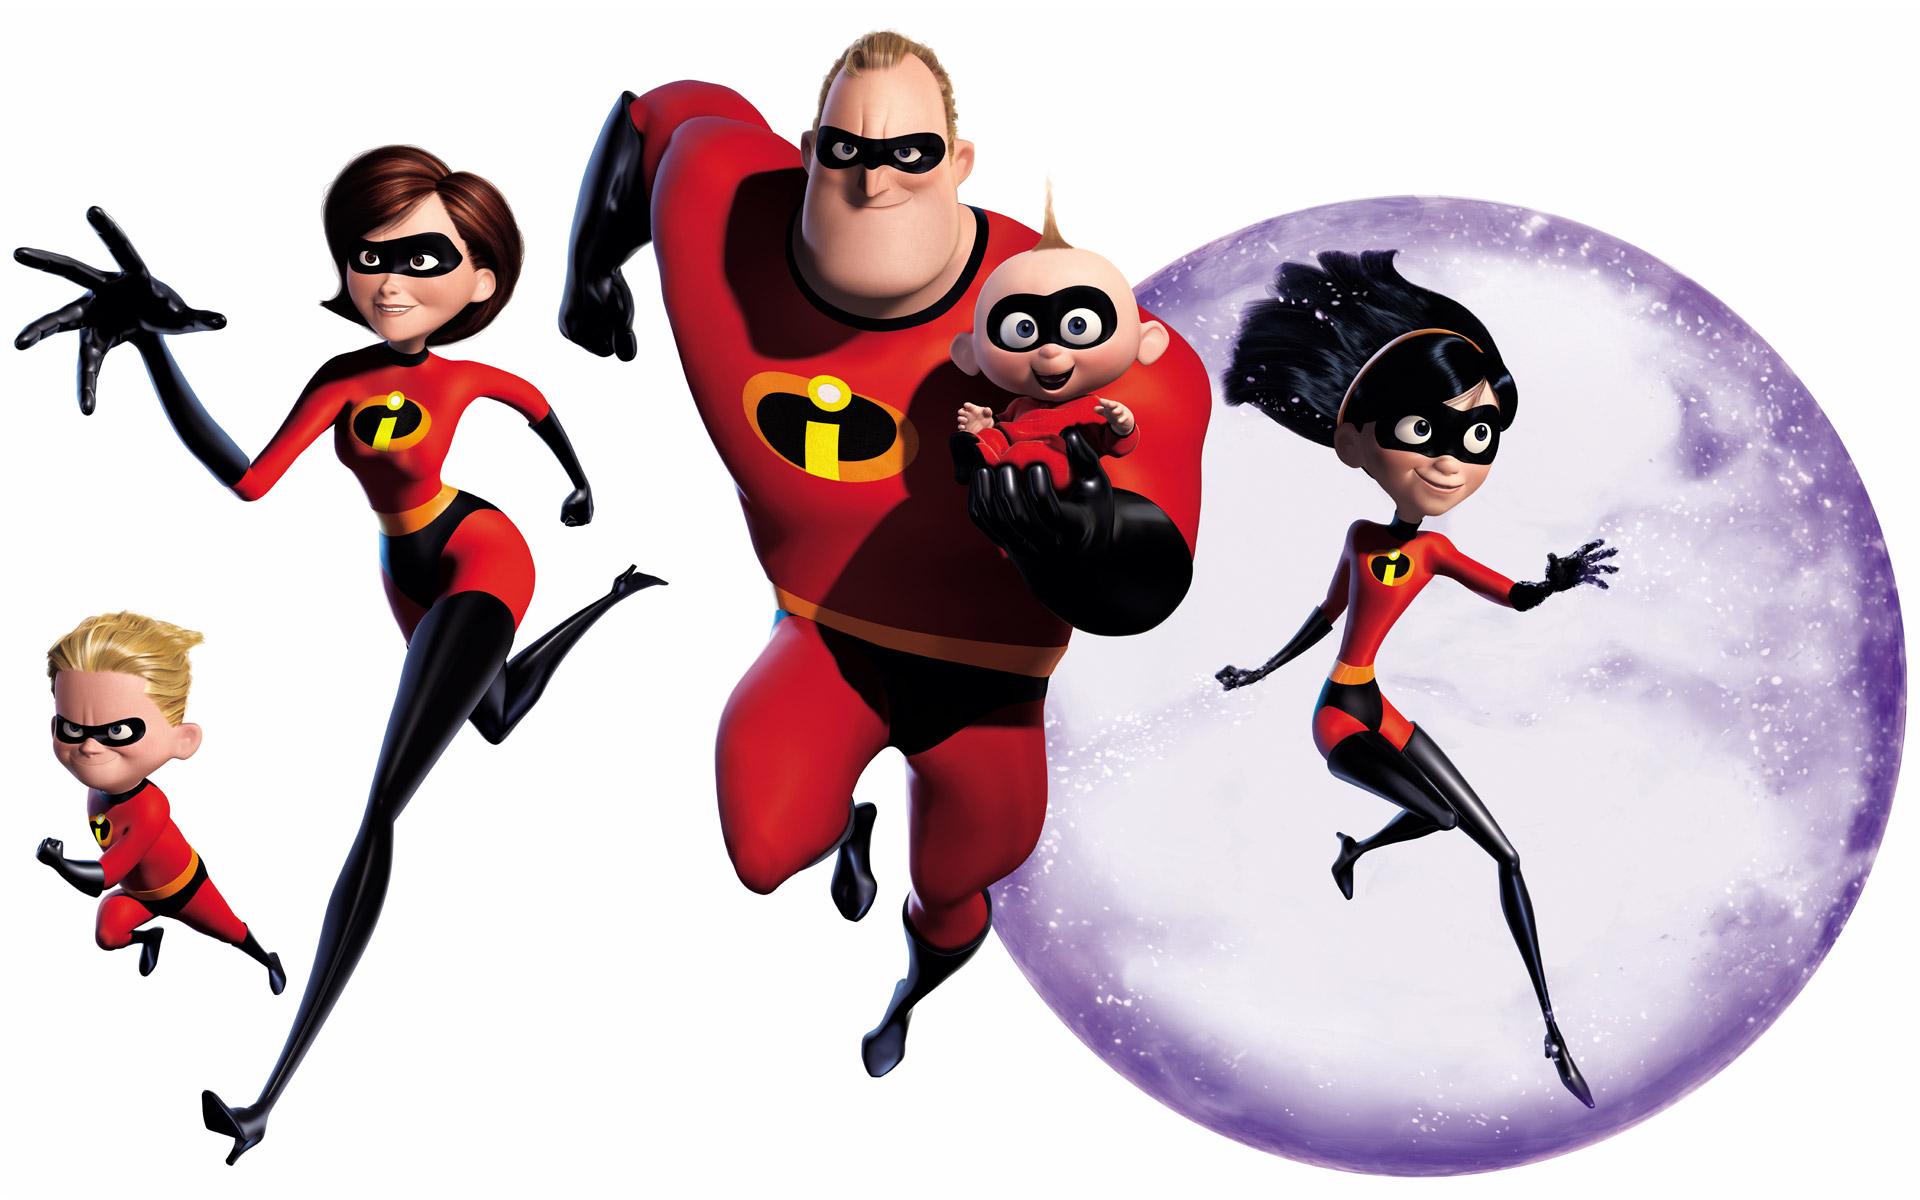 G Force Cartoon Characters Names : Cartoon characters are incredible visualcomm